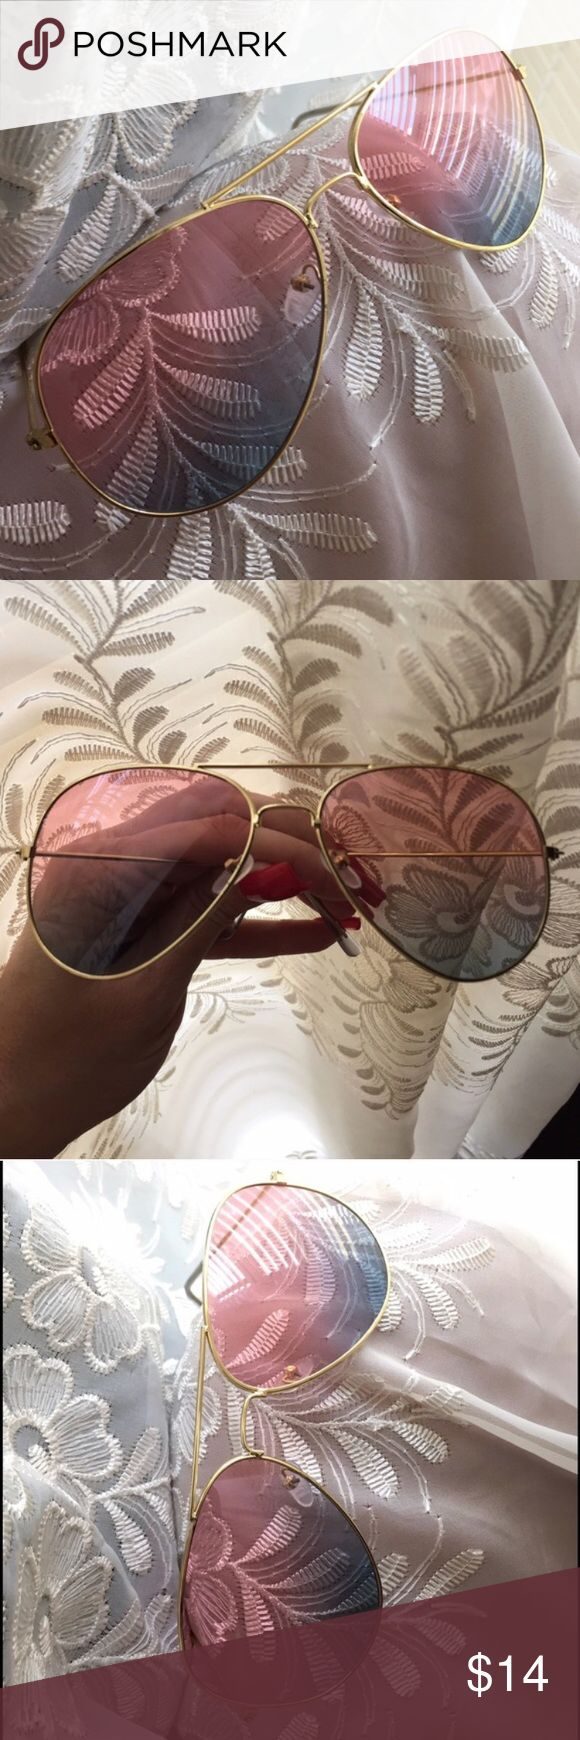 """☀️NEW☀️ Pink/Blue Transparent Ombré Aviators ❗️PRICE IS FIRM❗️ Transparent pink & blue ombré lenses. Gold frames . Clear arm/ear guards. Approximately 5.75"""" across frame front, 2 x 2.75"""" each lens frame. Fit and comfort not guaranteed. Unbranded. Drawstring pouch and small lens cloth included. All images show example of actual stocked glasses. I do not model. Brand new retail w/o tag. No trades, no off App transactions. Leoninus Accessories Sunglasses"""